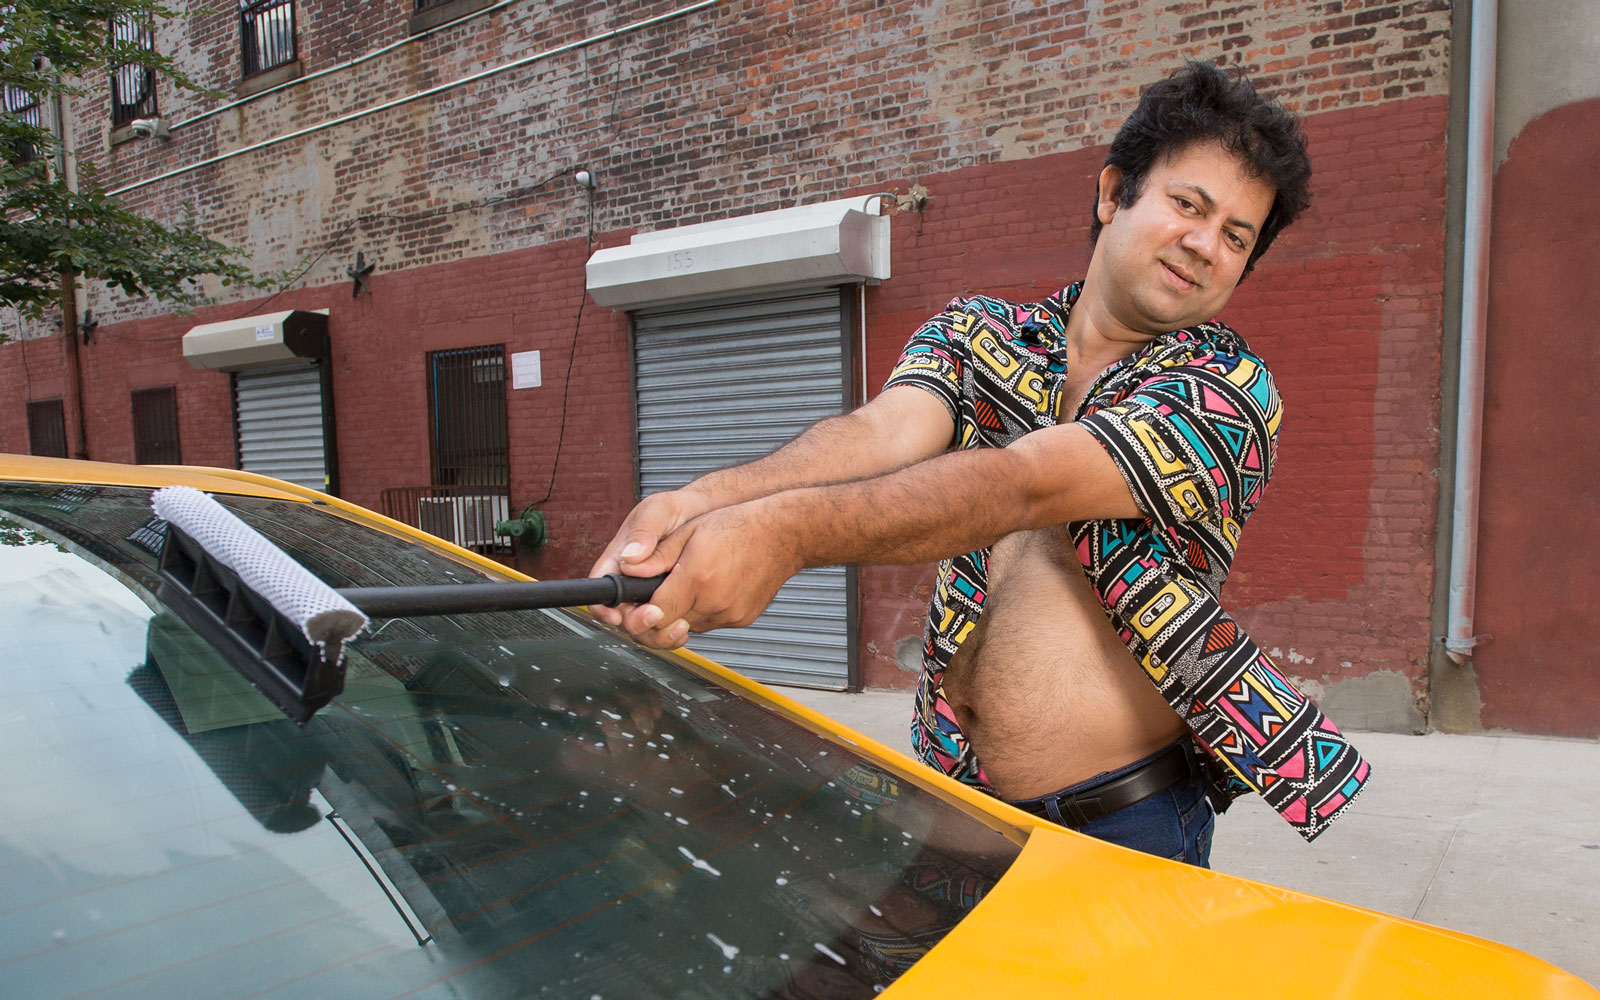 The annual NYC taxi calendar raises money to help immigrant and working individuals.